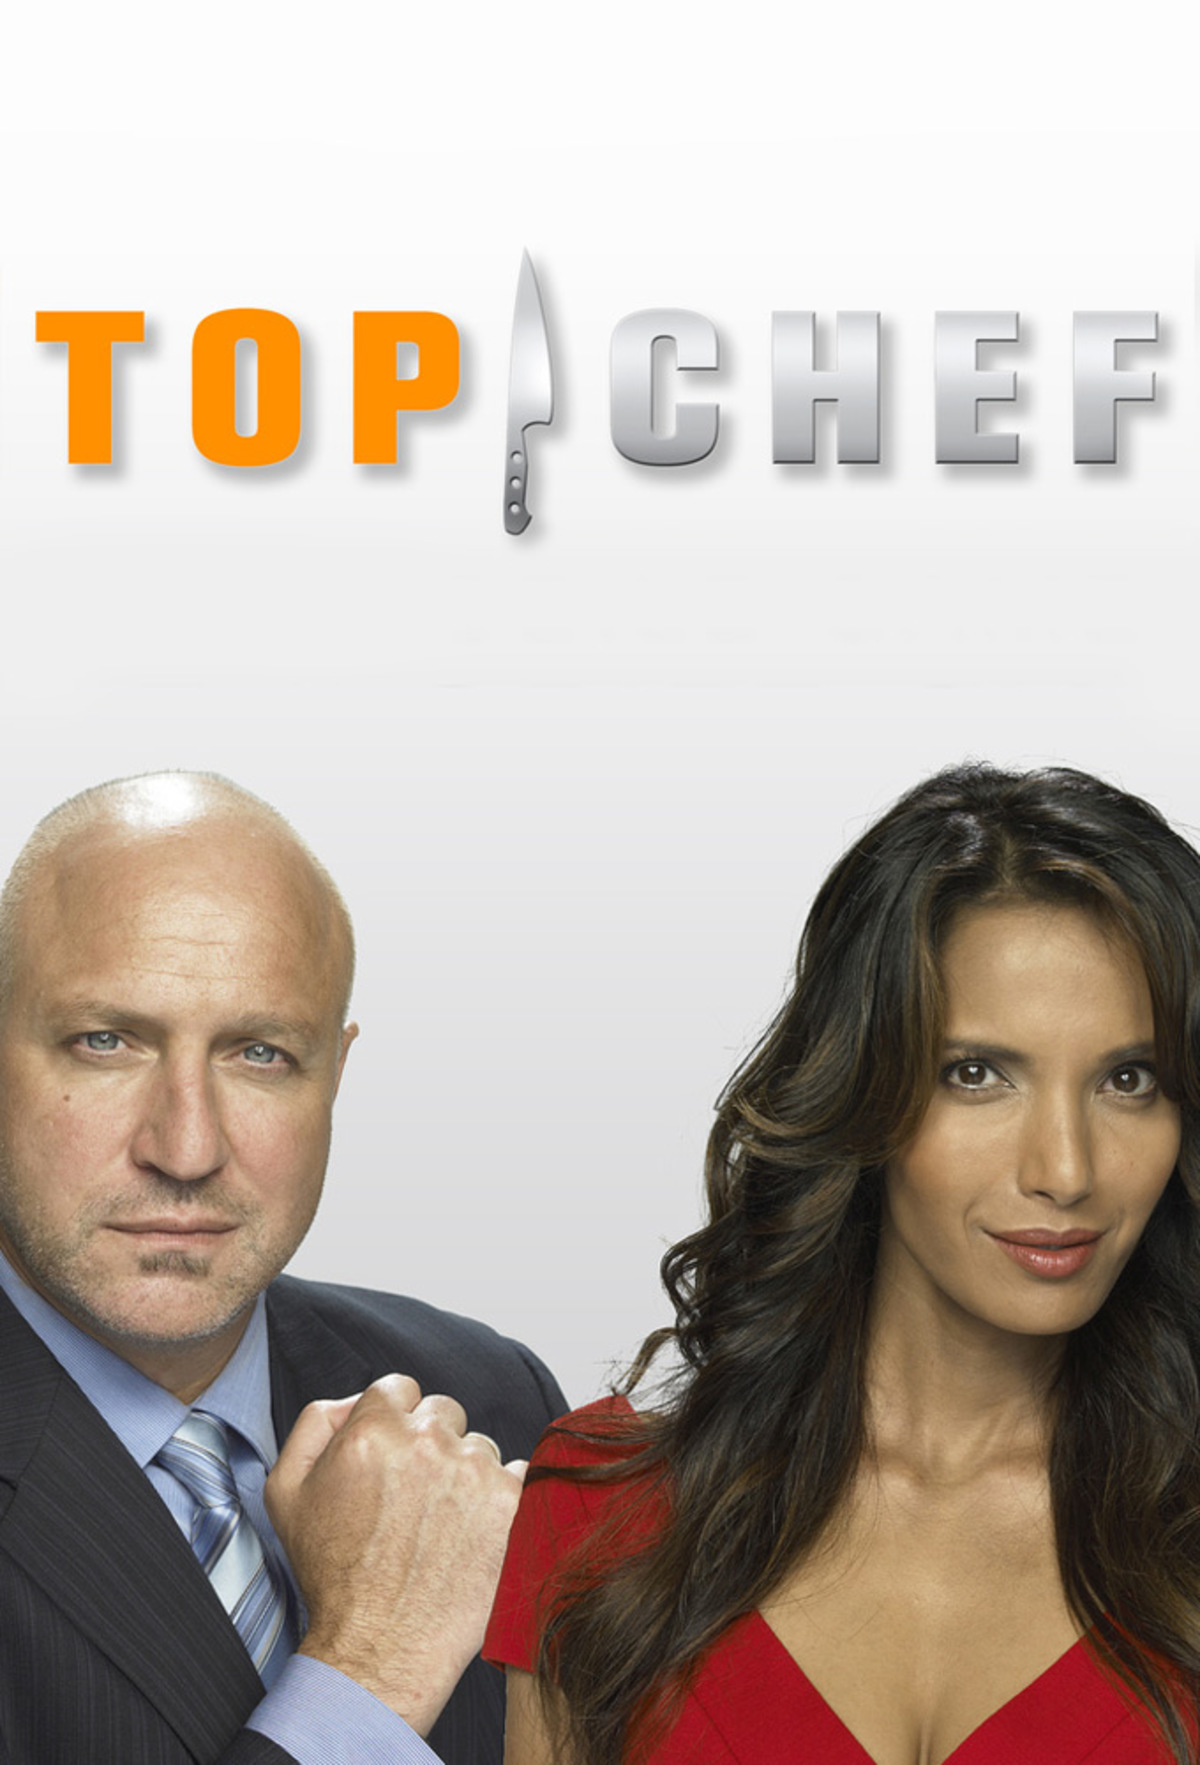 Top Chef - Season 17 Episode 3 - Strokes Of Genius